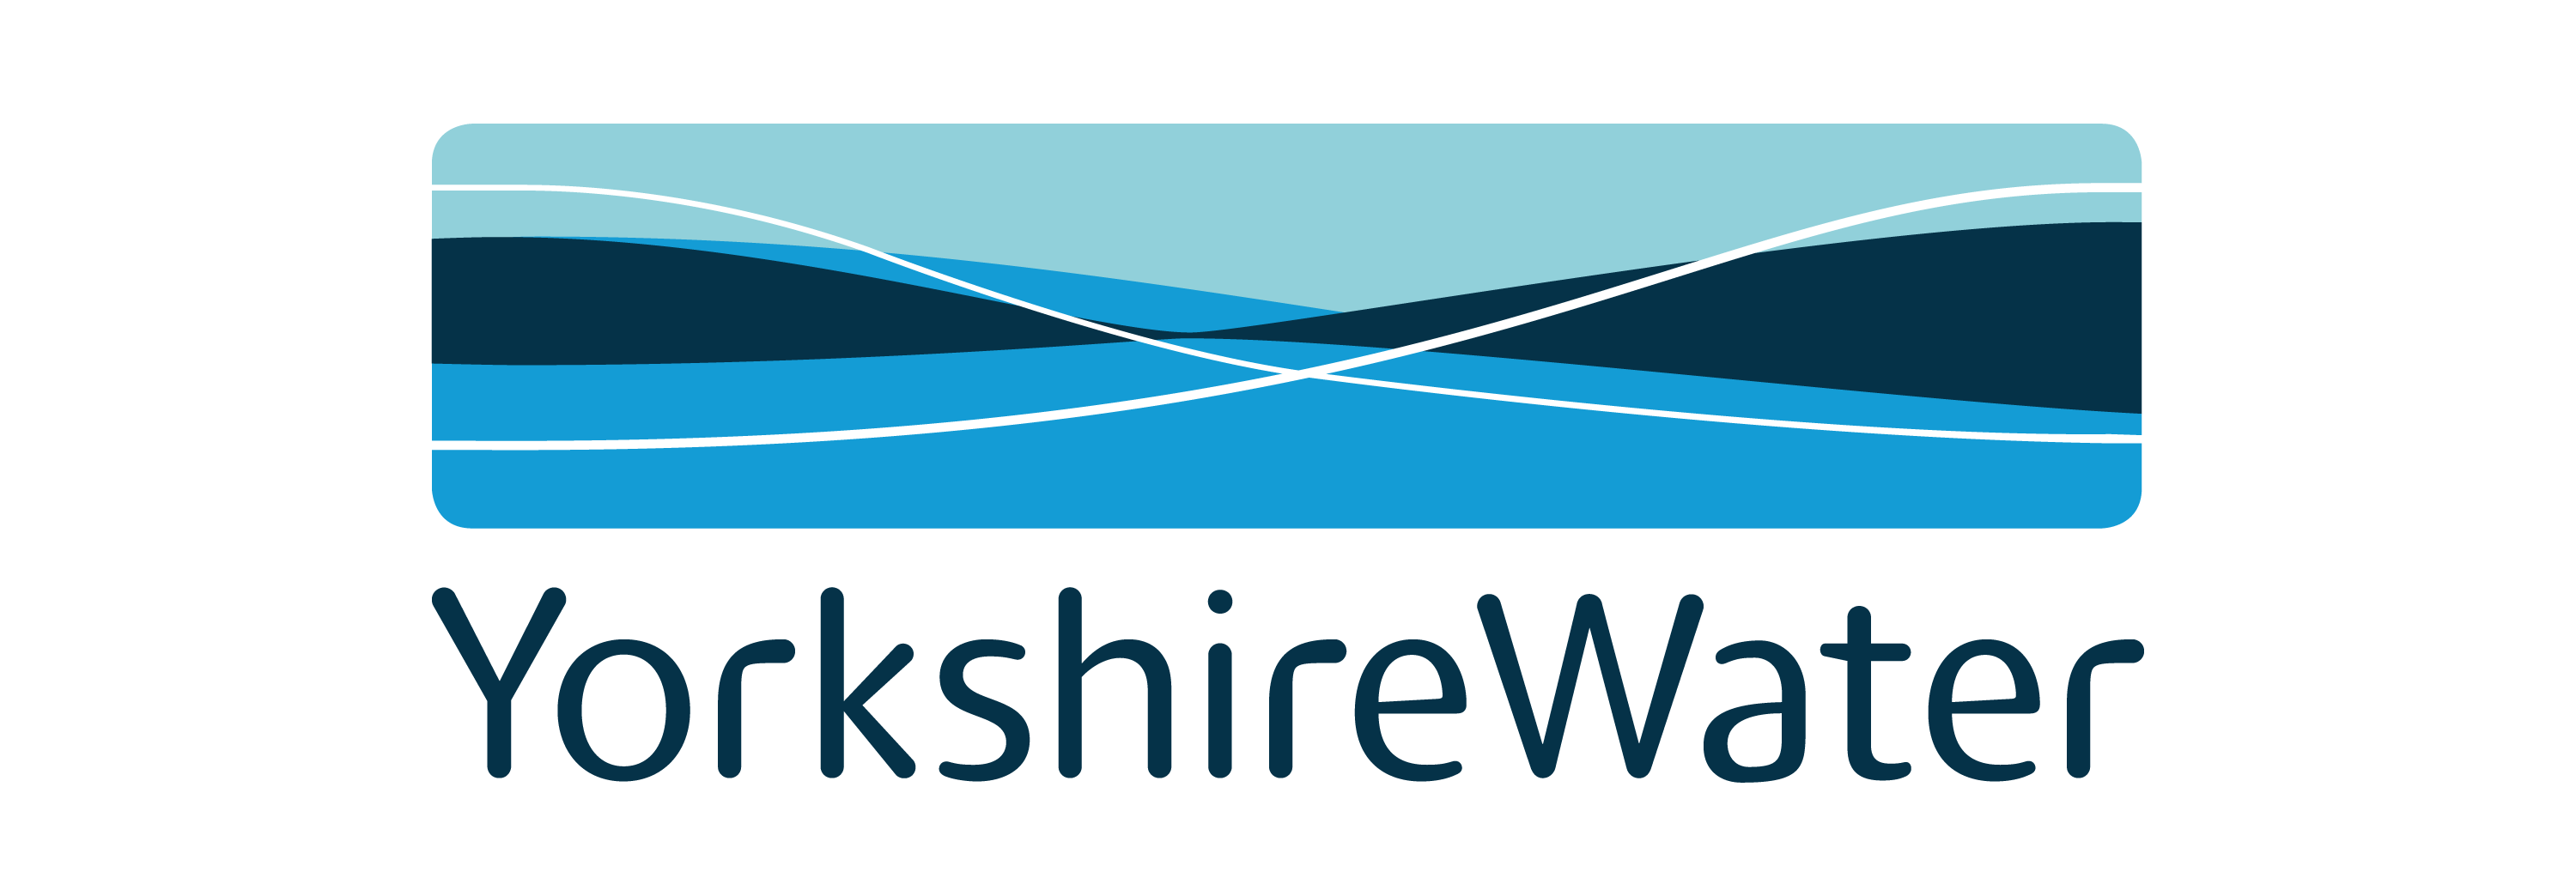 donate-yorkshire-water-logo